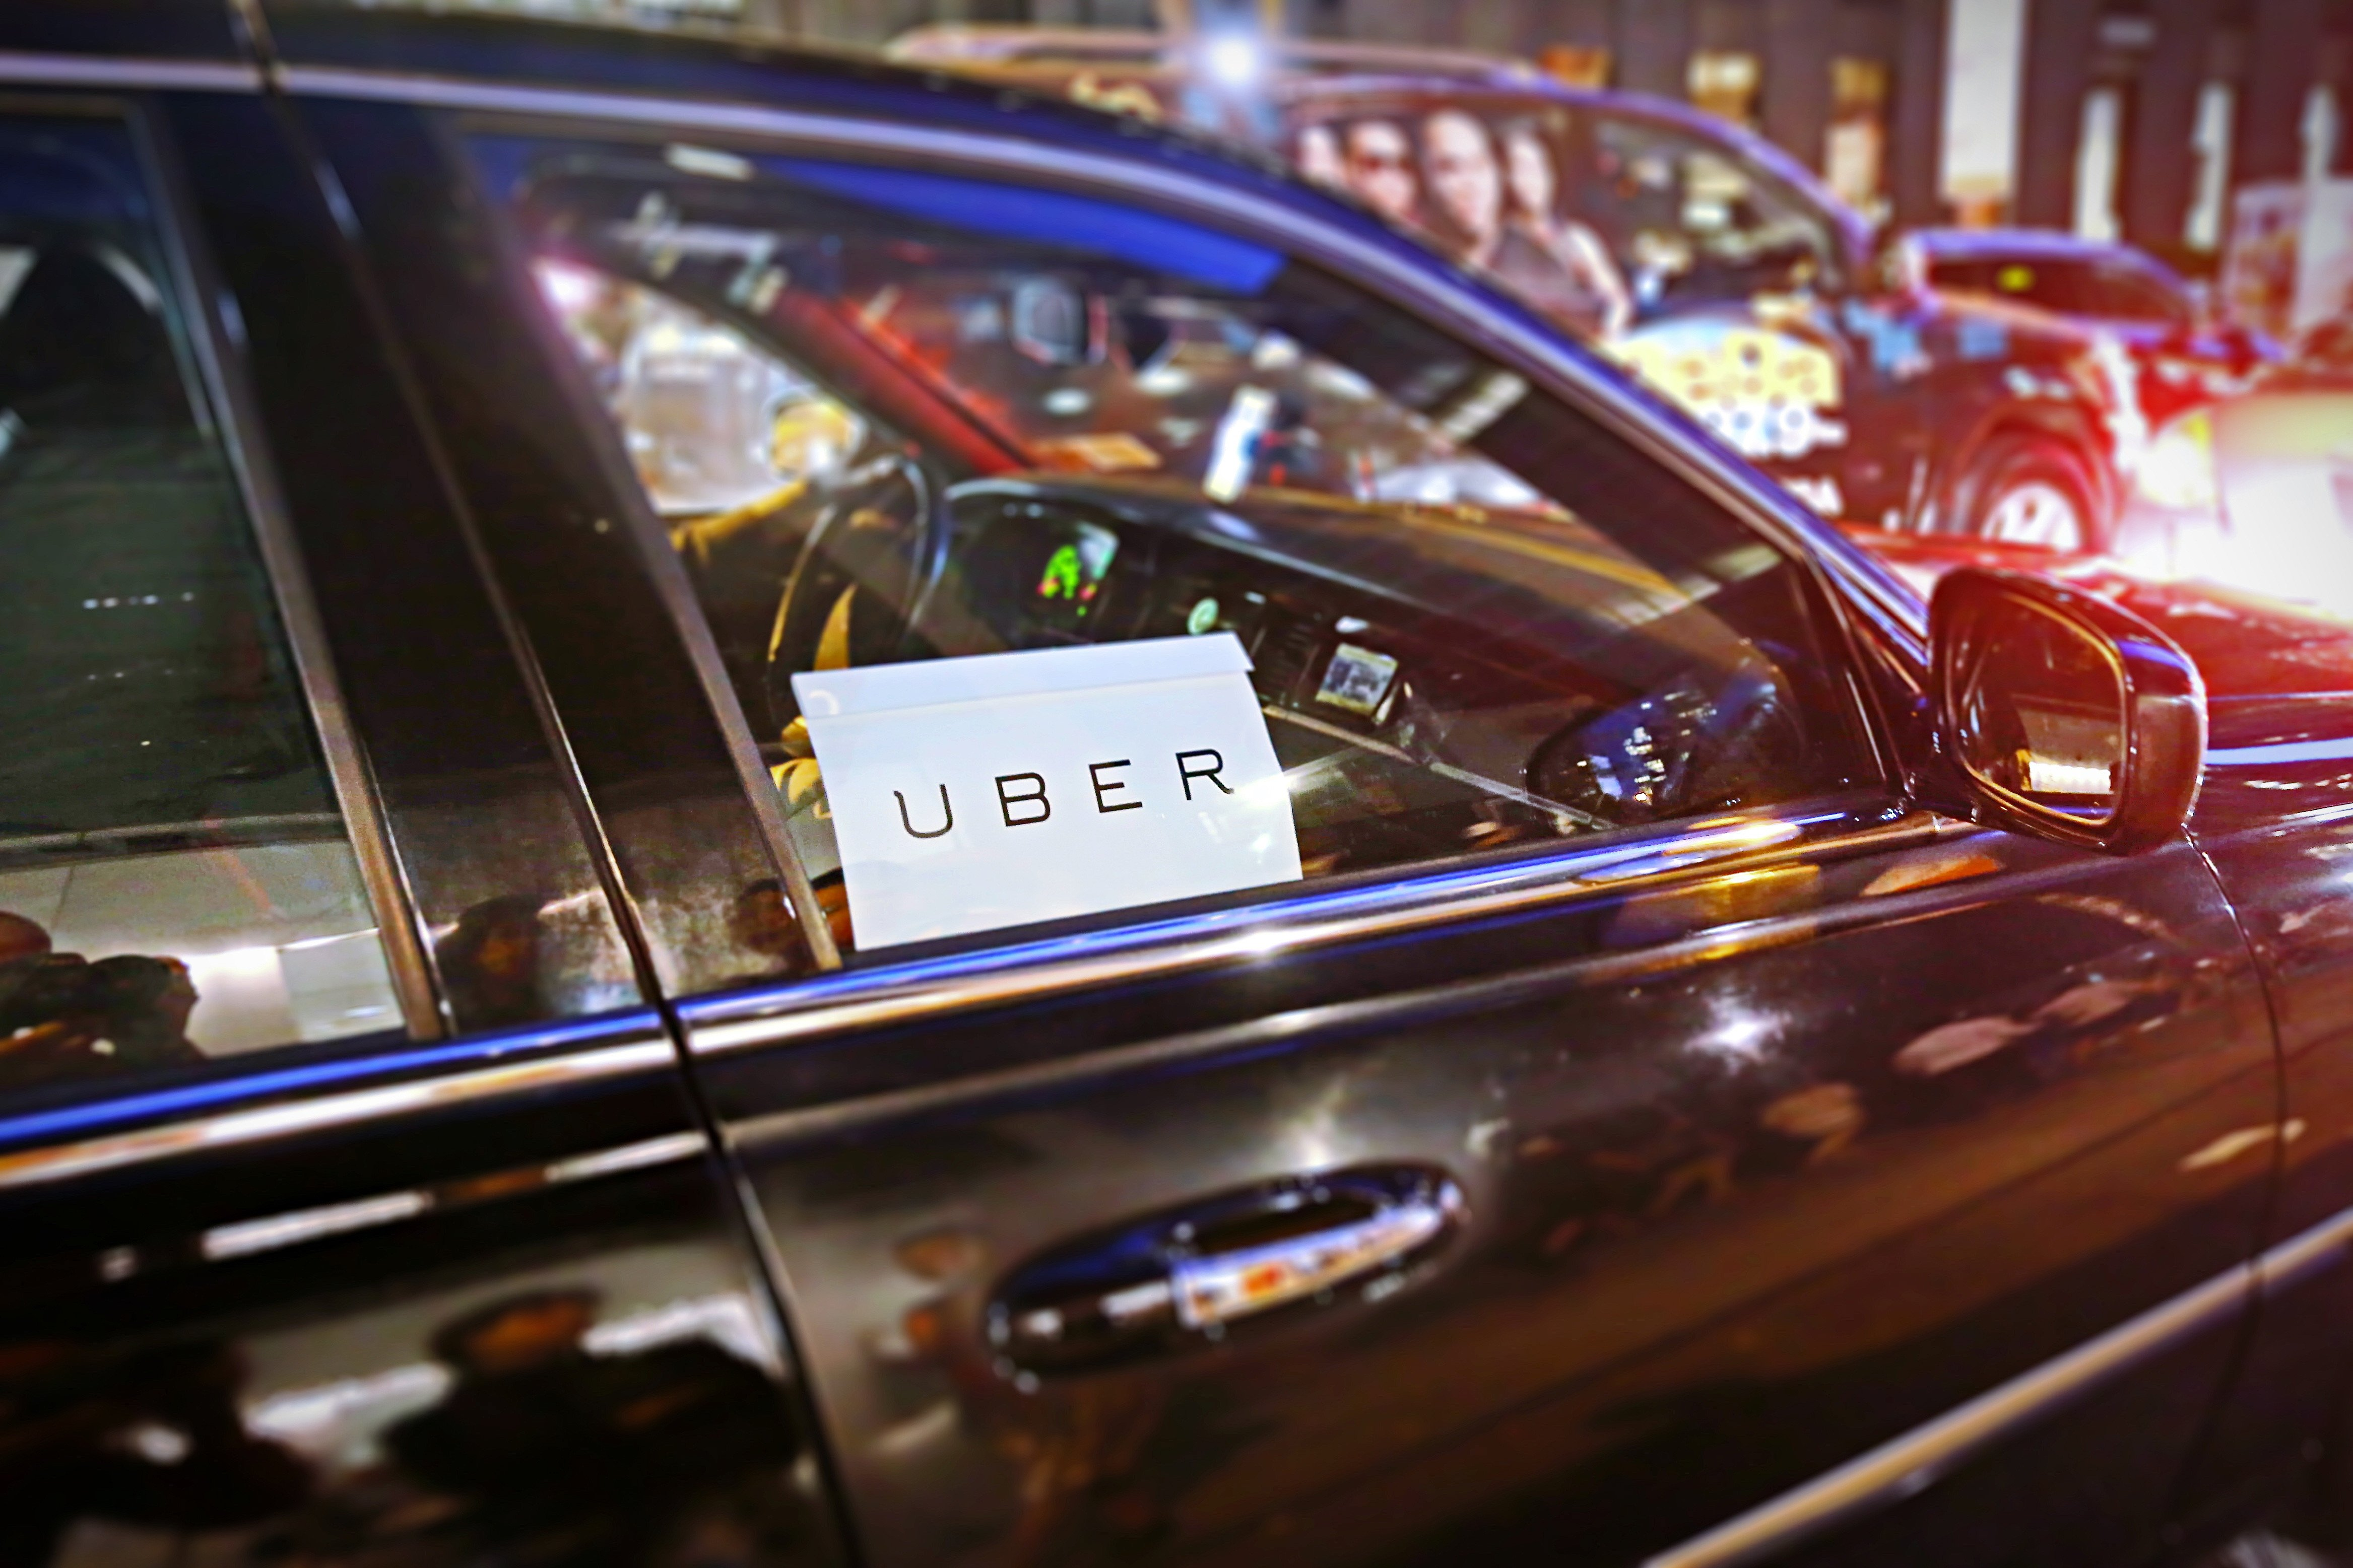 Israeli diplomat says he was thrown out of Uber for speaking Hebrew